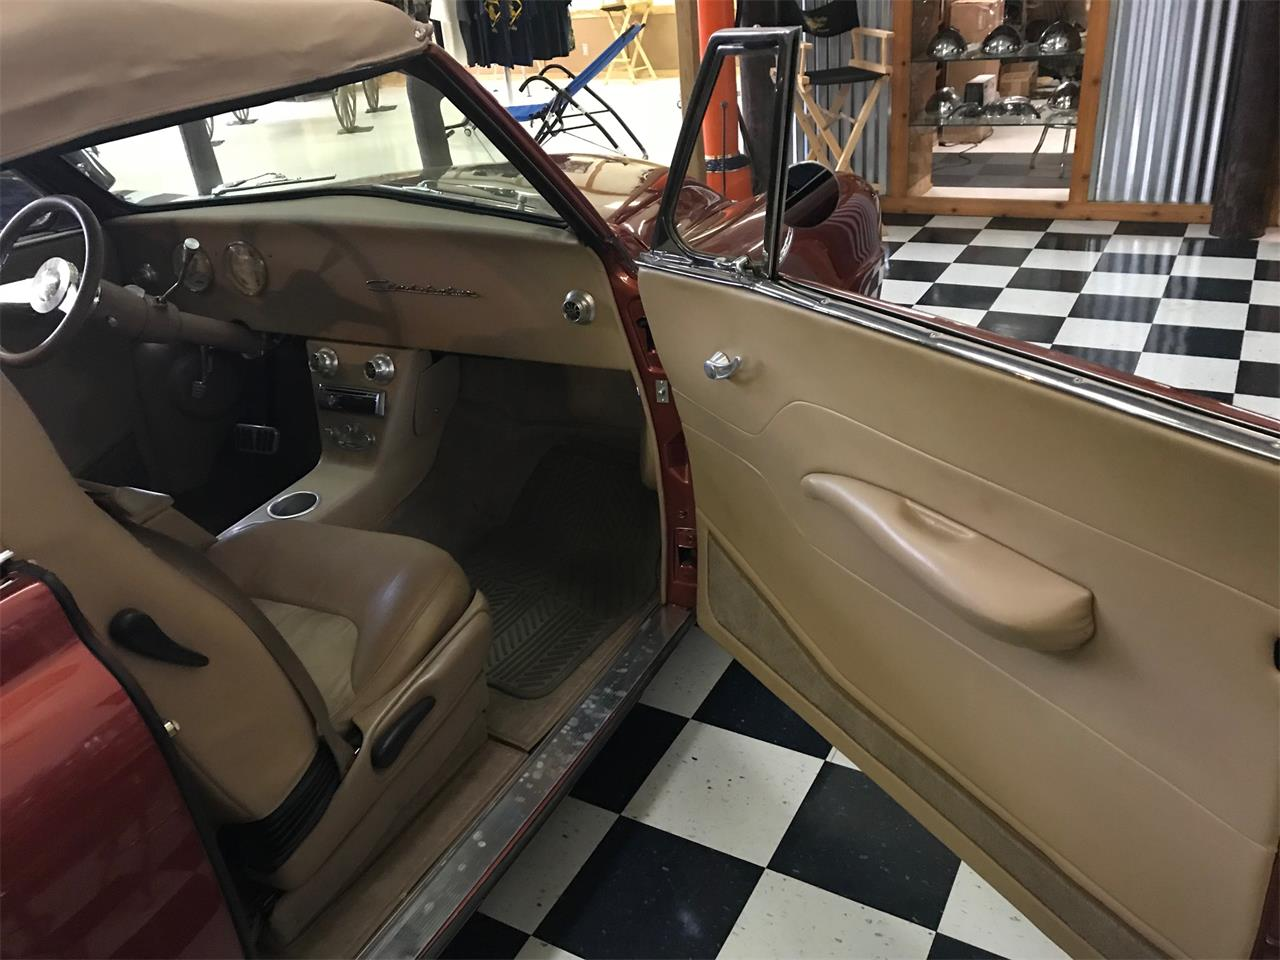 Classic Cars For Sale Houston Area: 1950 Studebaker Coupe For Sale